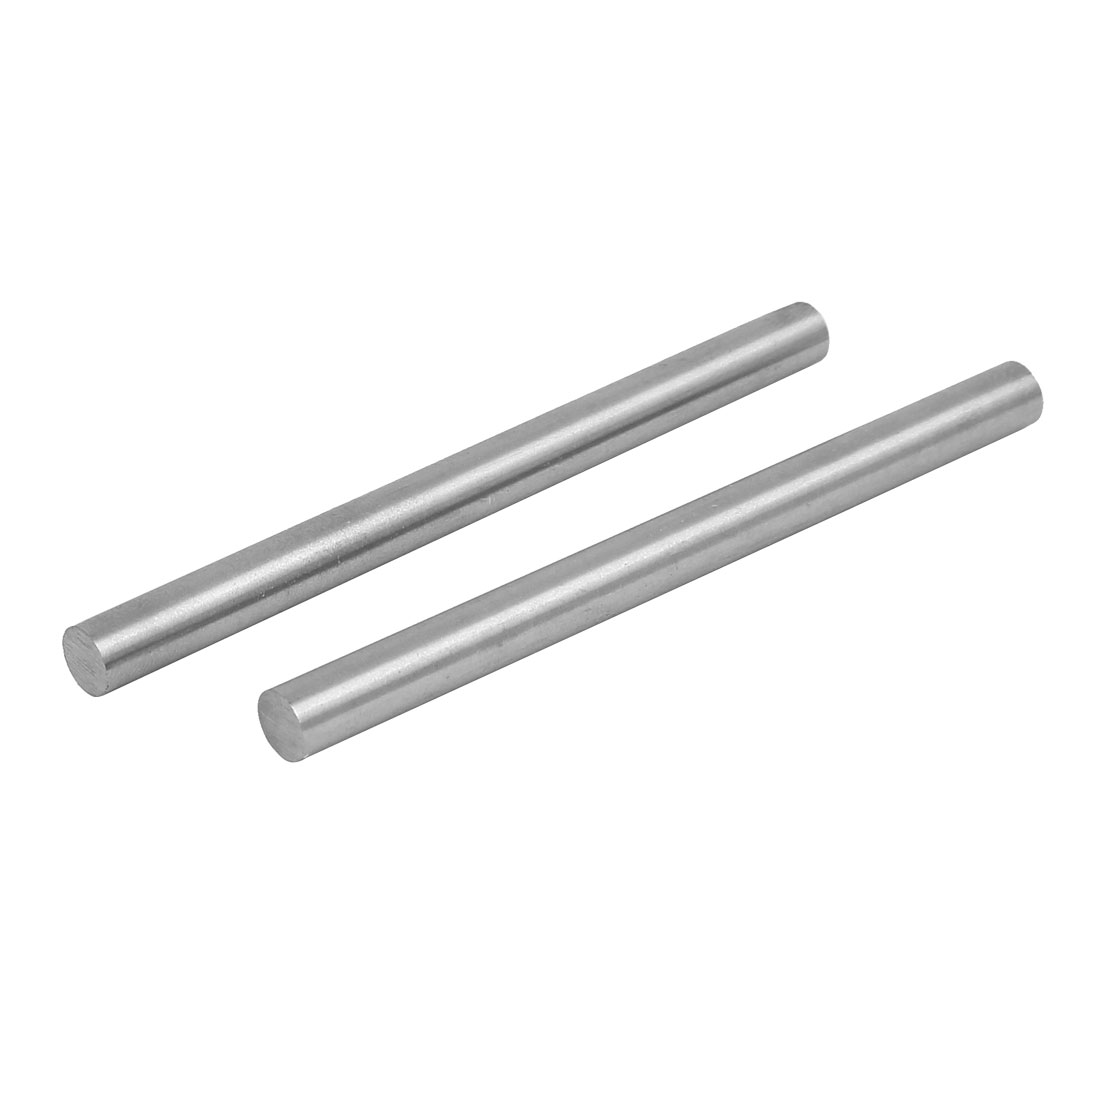 7.5mm Dia 100mm Length HSS Round Shaft Rod Bar Lathe Tools Gray 2pcs